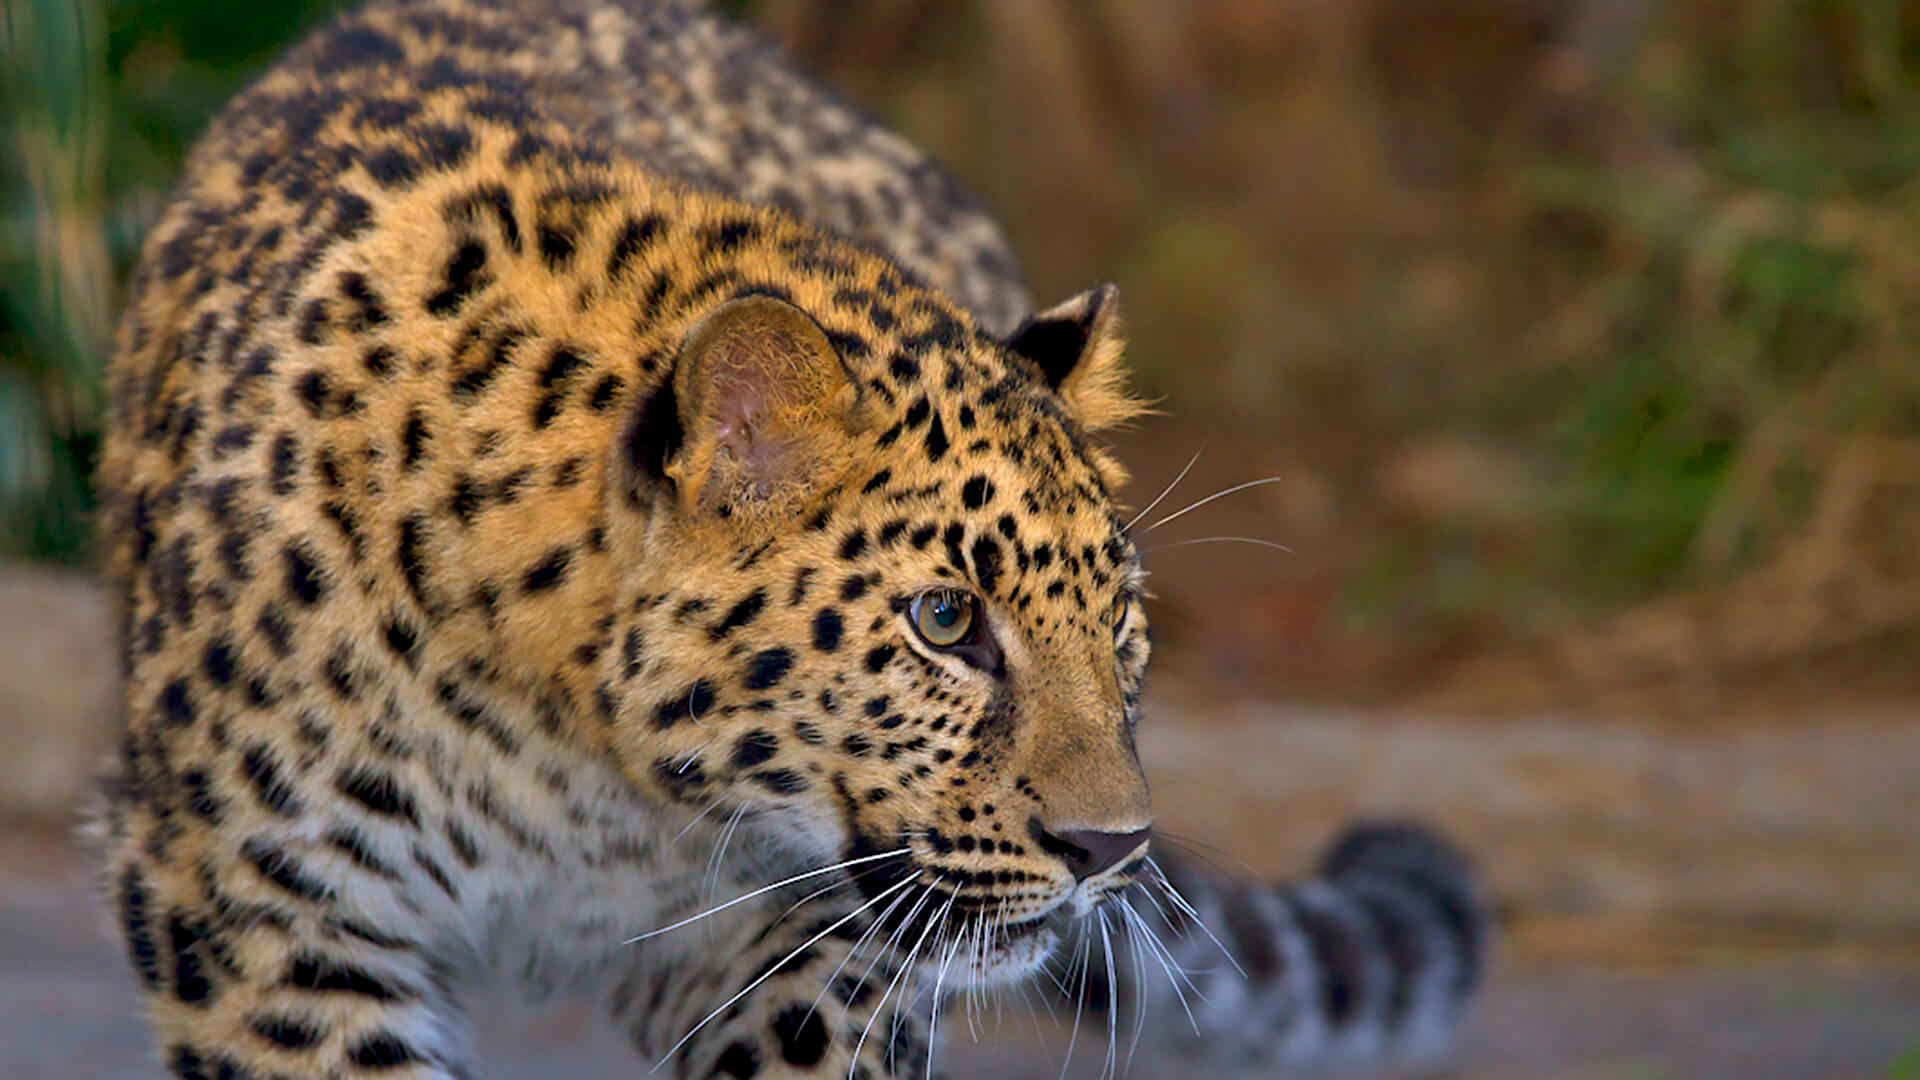 hight resolution of amur leopard looking to the right with blurred jungle background